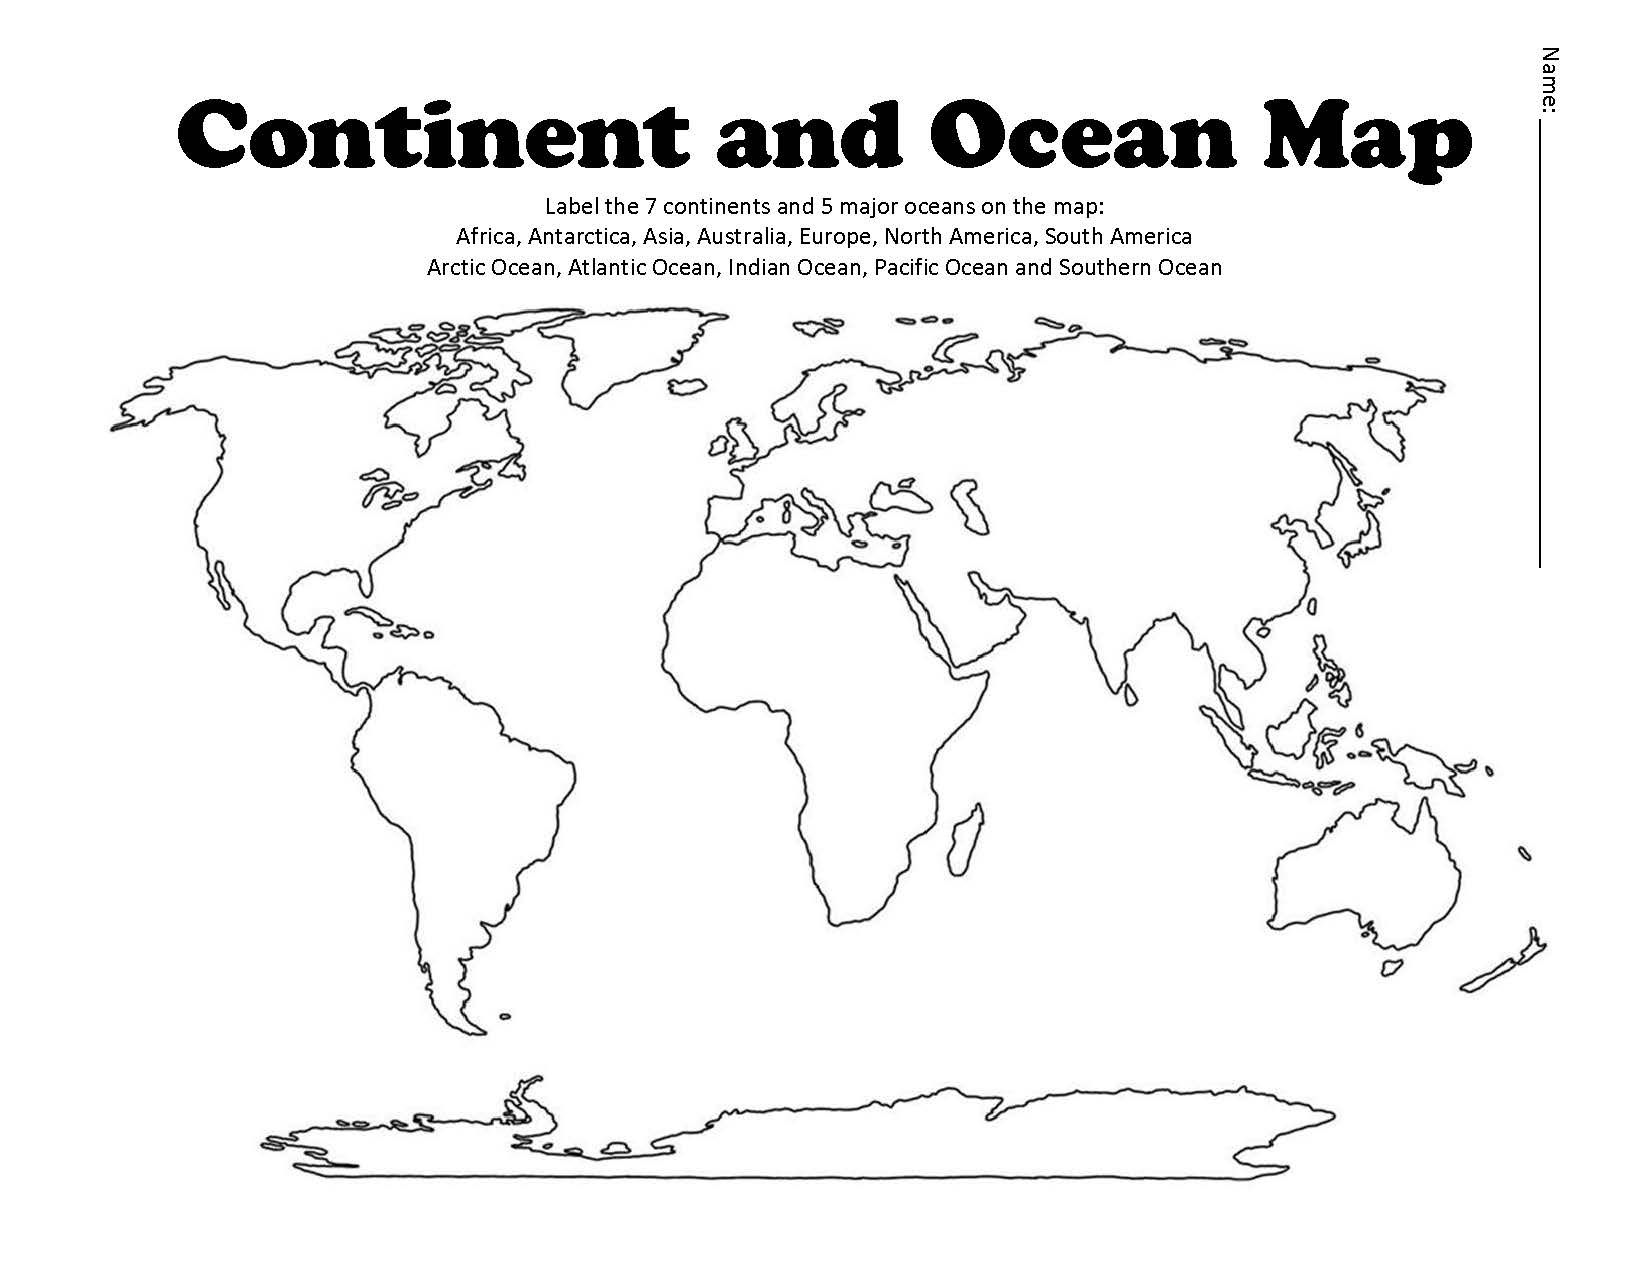 33 Blank Map To Label Continents And Oceans